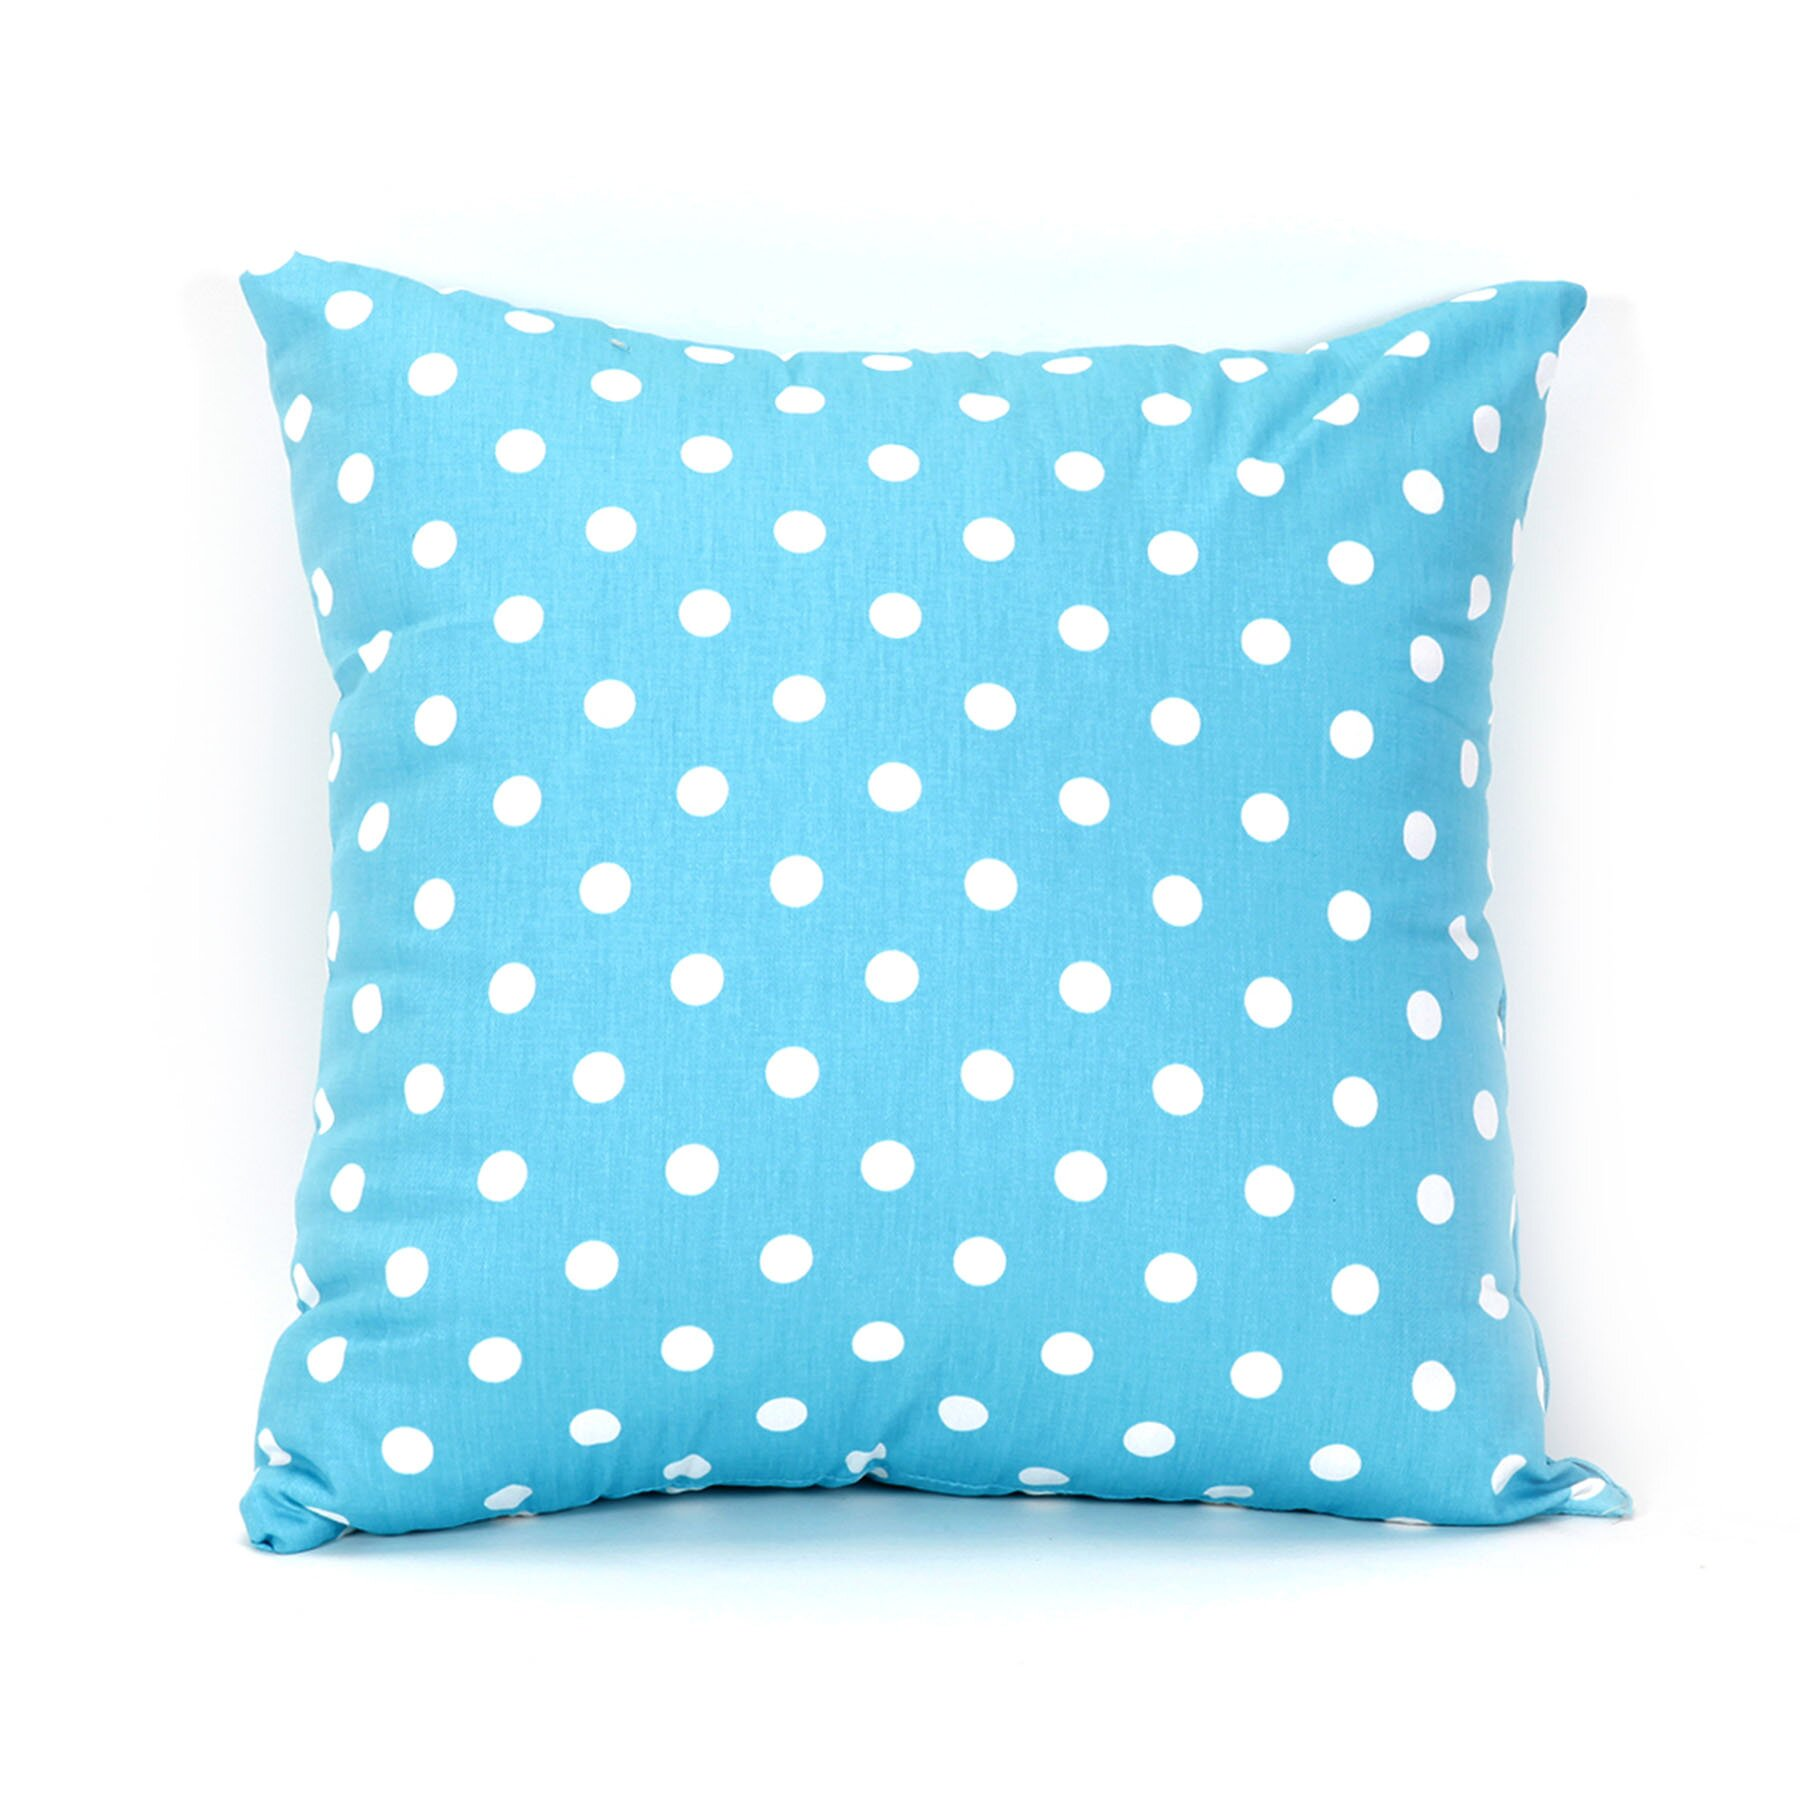 Viv + Rae Telly Polyester/Polyester blend Small Throw Pillow & Reviews Wayfair